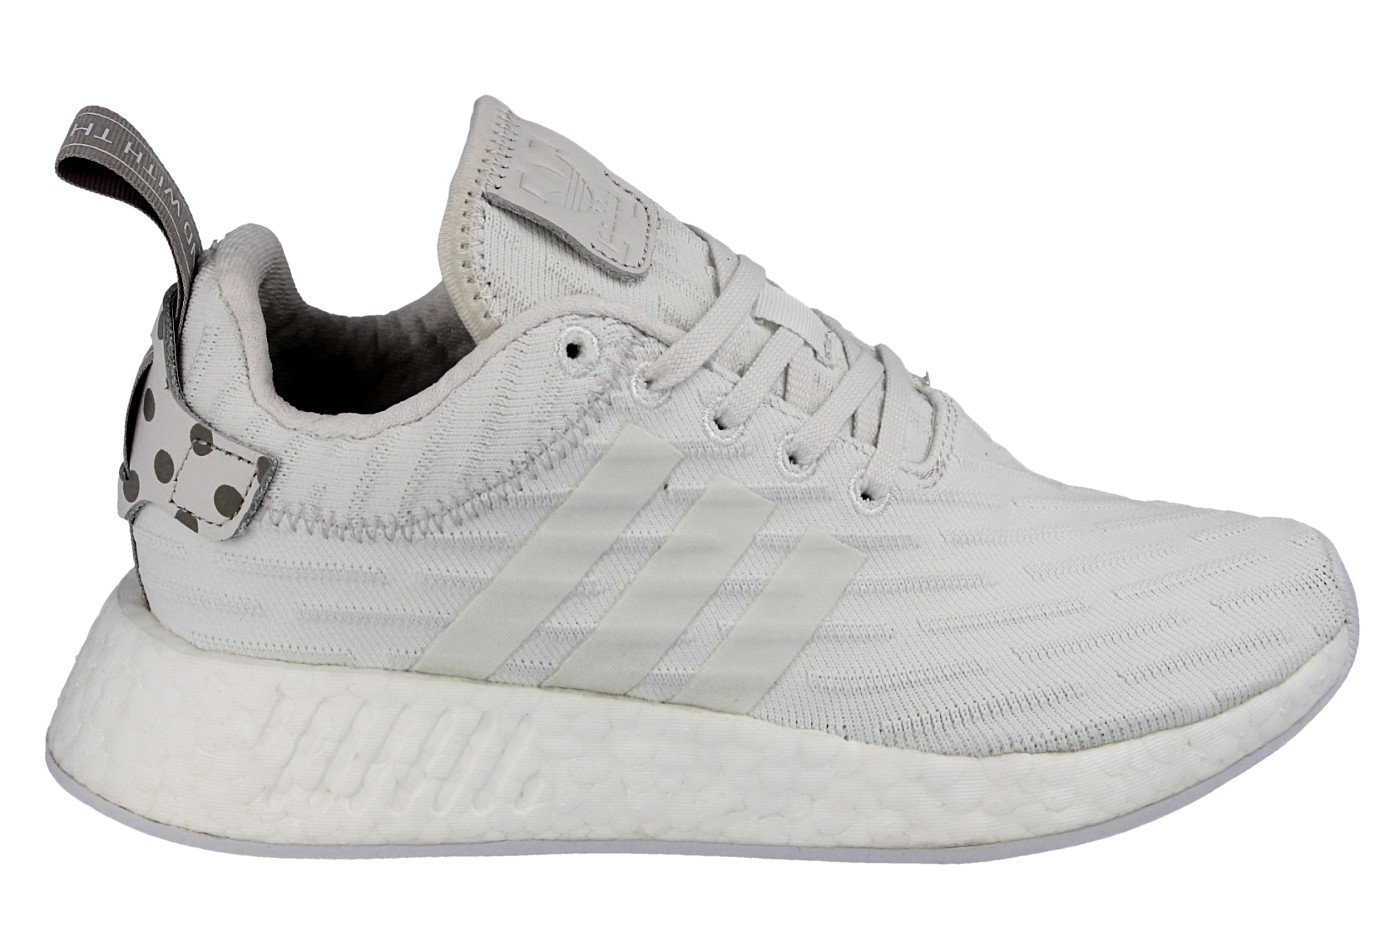 Adidas Nmd_R2 Womens Style: BY2245-Wht Size: 6 M US